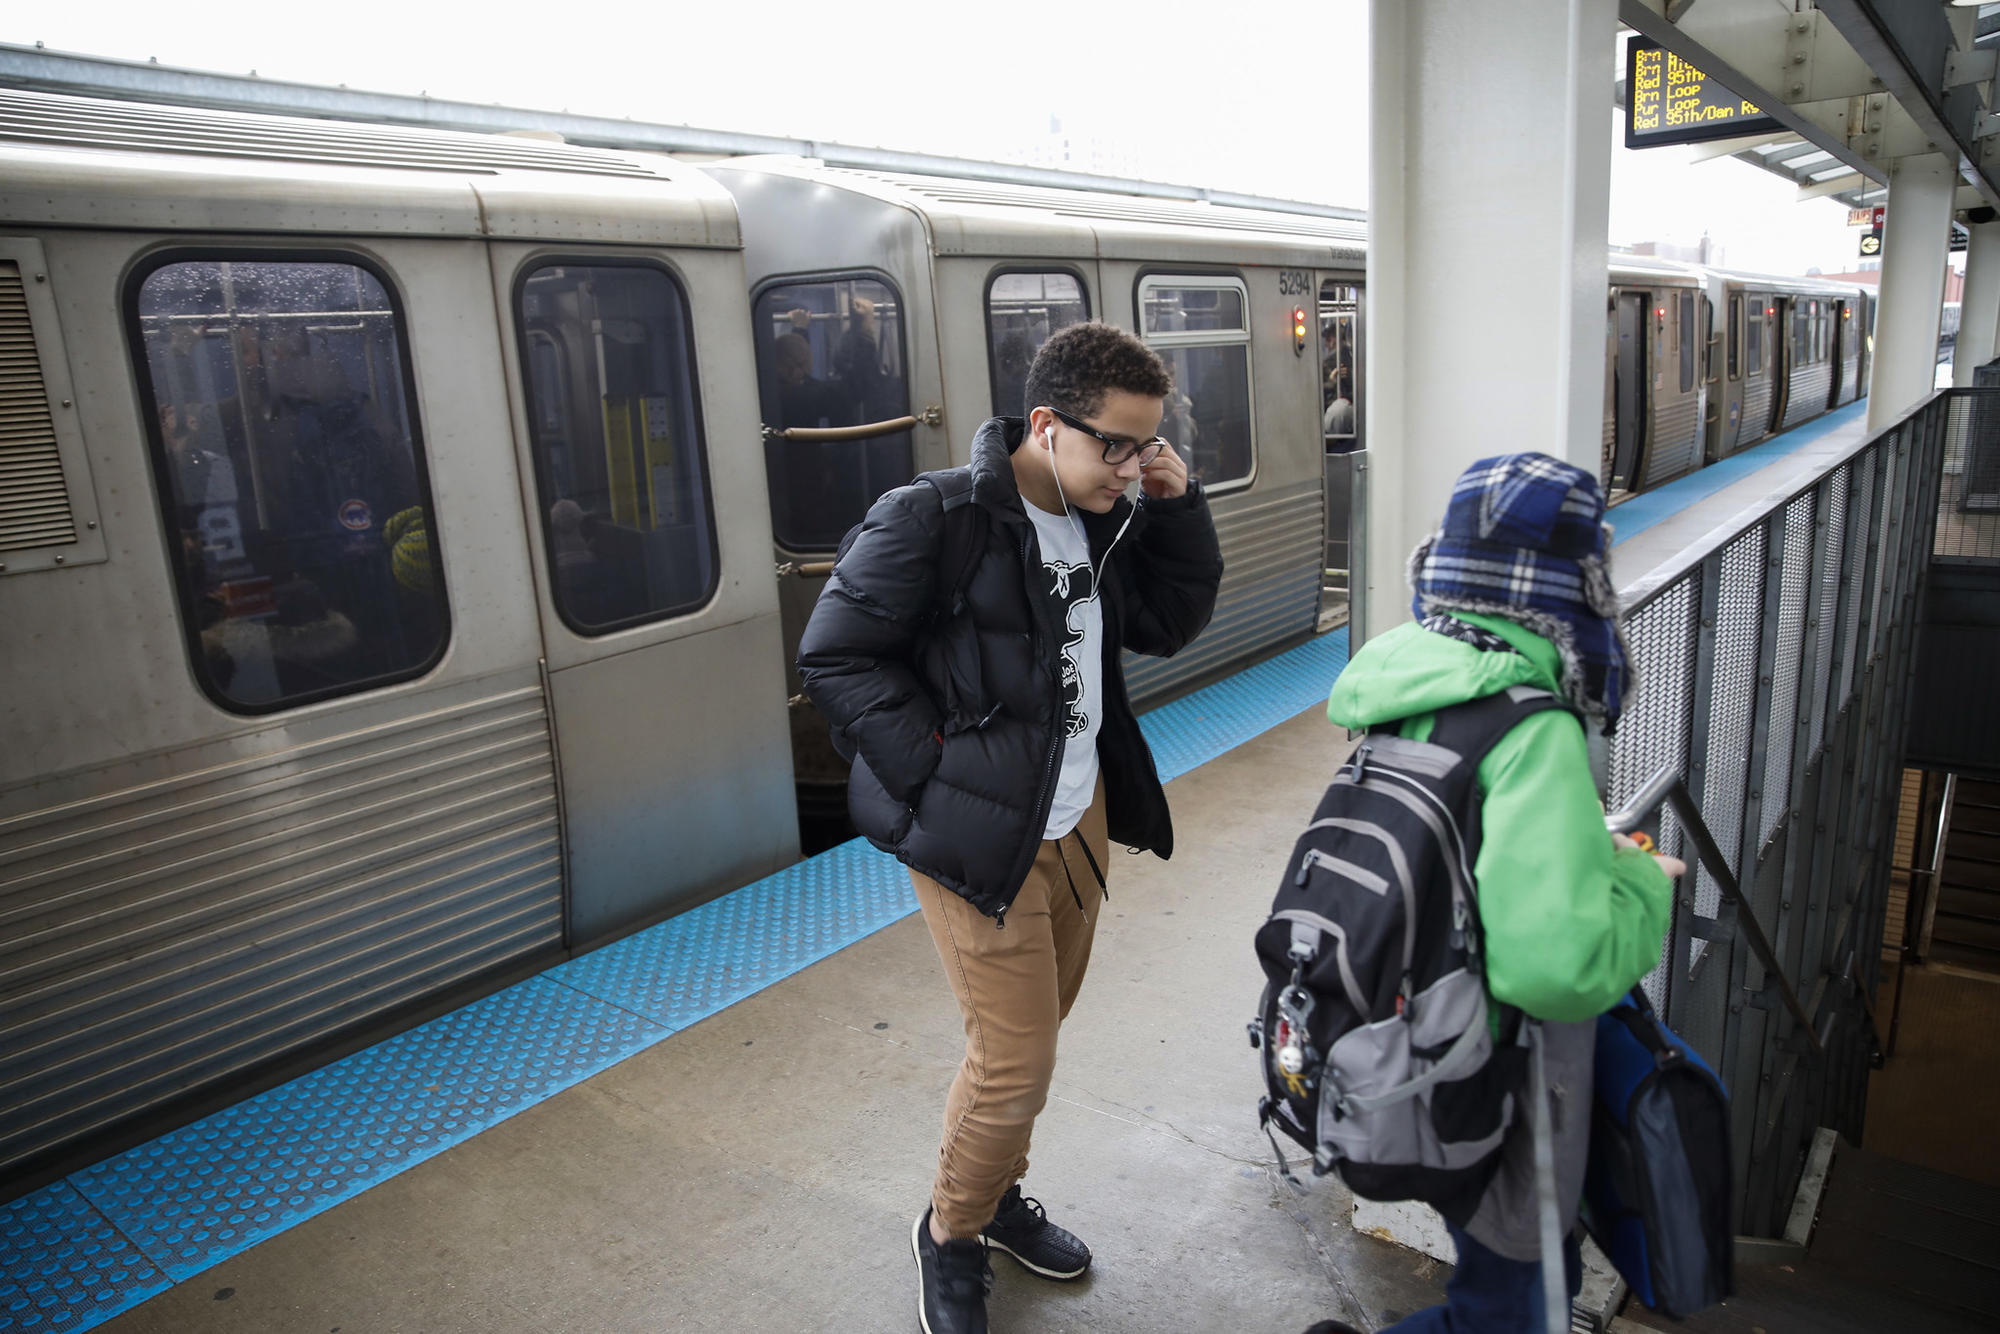 Cta kids ride free - Cheap spring break trip